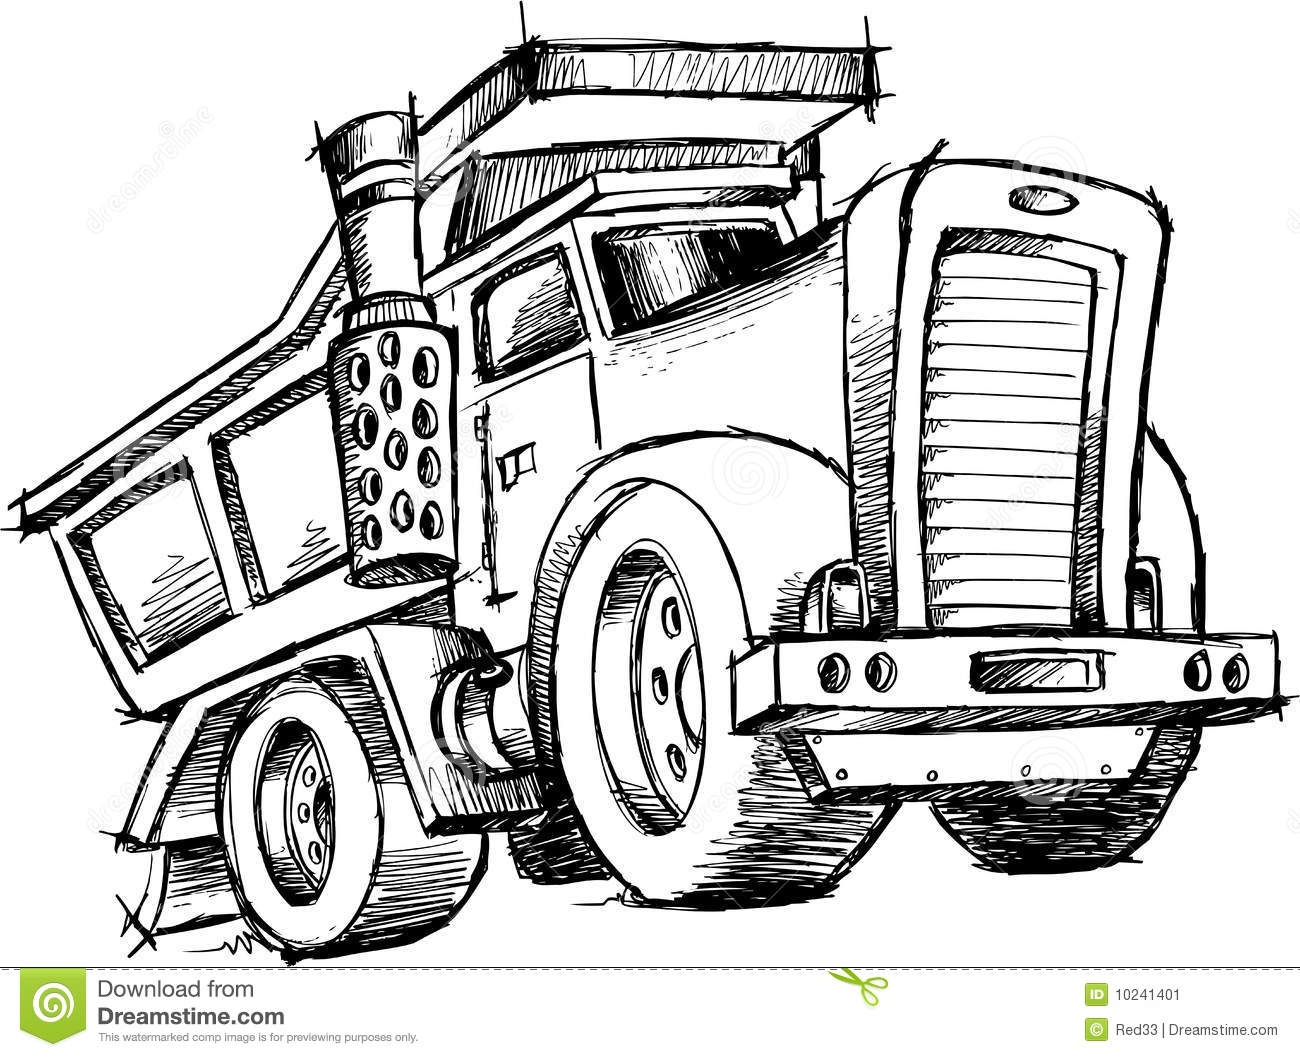 20 Garbage Truck Coloring Page Printable | FREE COLORING PAGES - Part 2